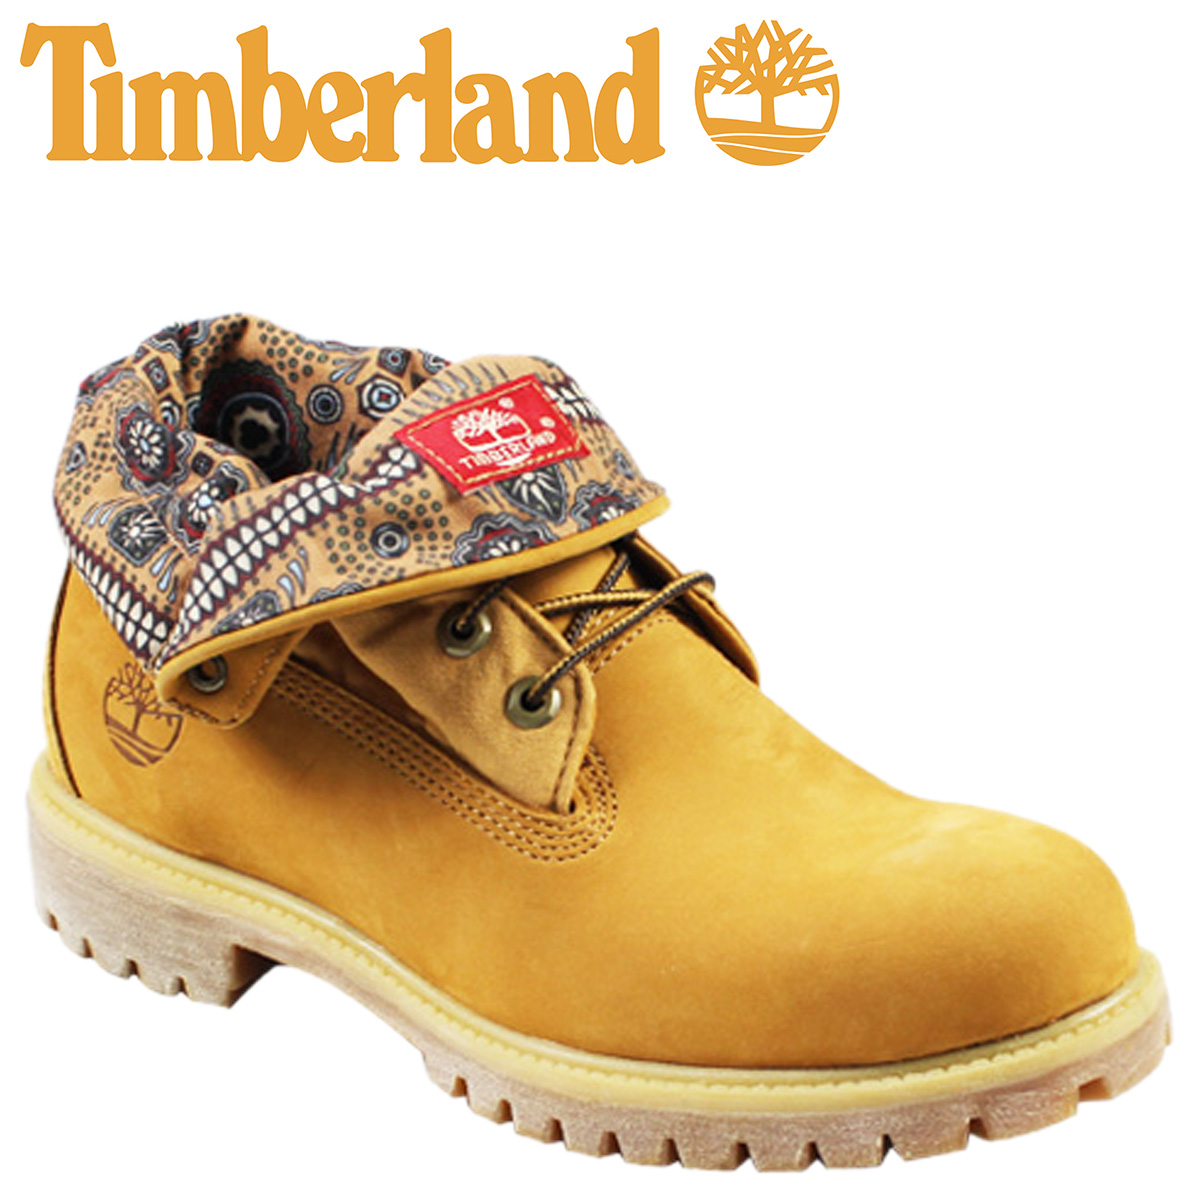 b9332c04522 Timberland Timberland icons roll top boots ICON ROLL-TOP nubuck x fork  men's 6826A wheat [3 / 24 new in stock] [regular]